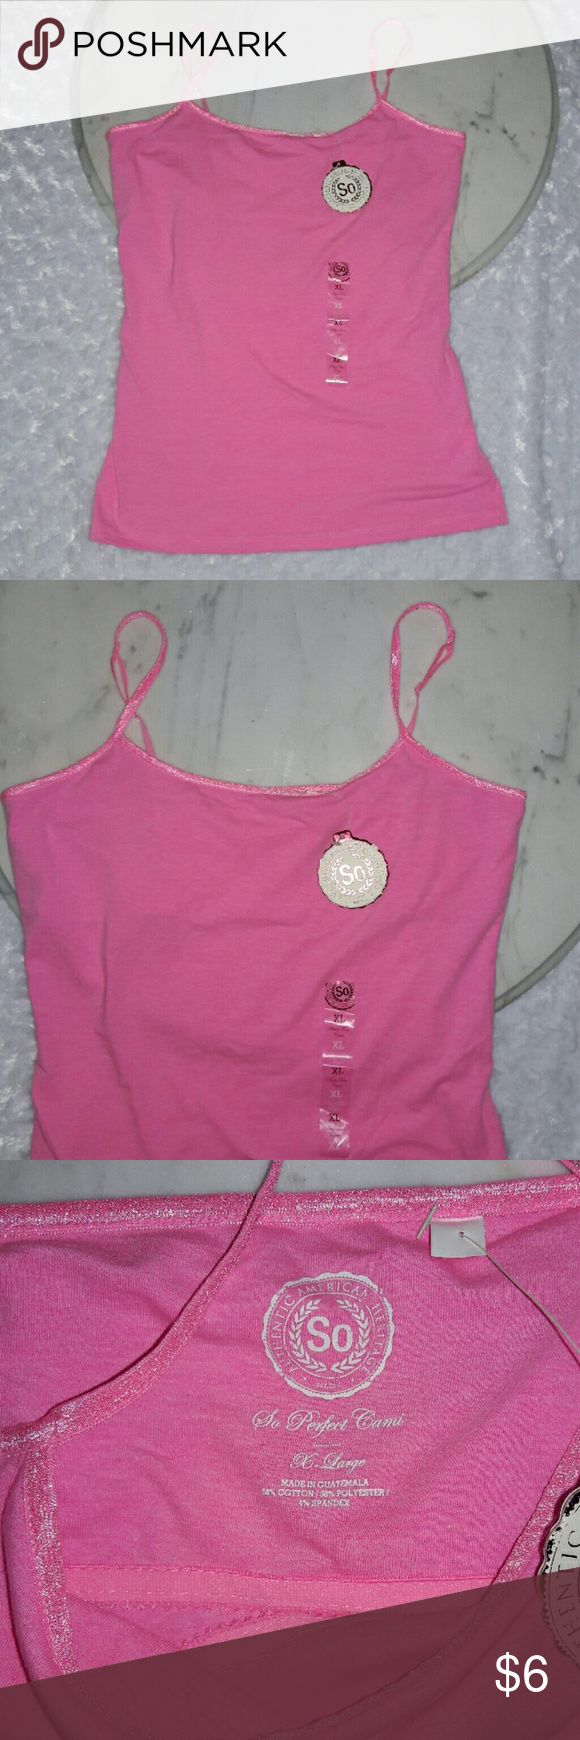 Pink Cami New with Tags Size XL Pink Cami New with Tags   Size XL  Authentic American Heritage Authentic American Heritage Tops Camisoles